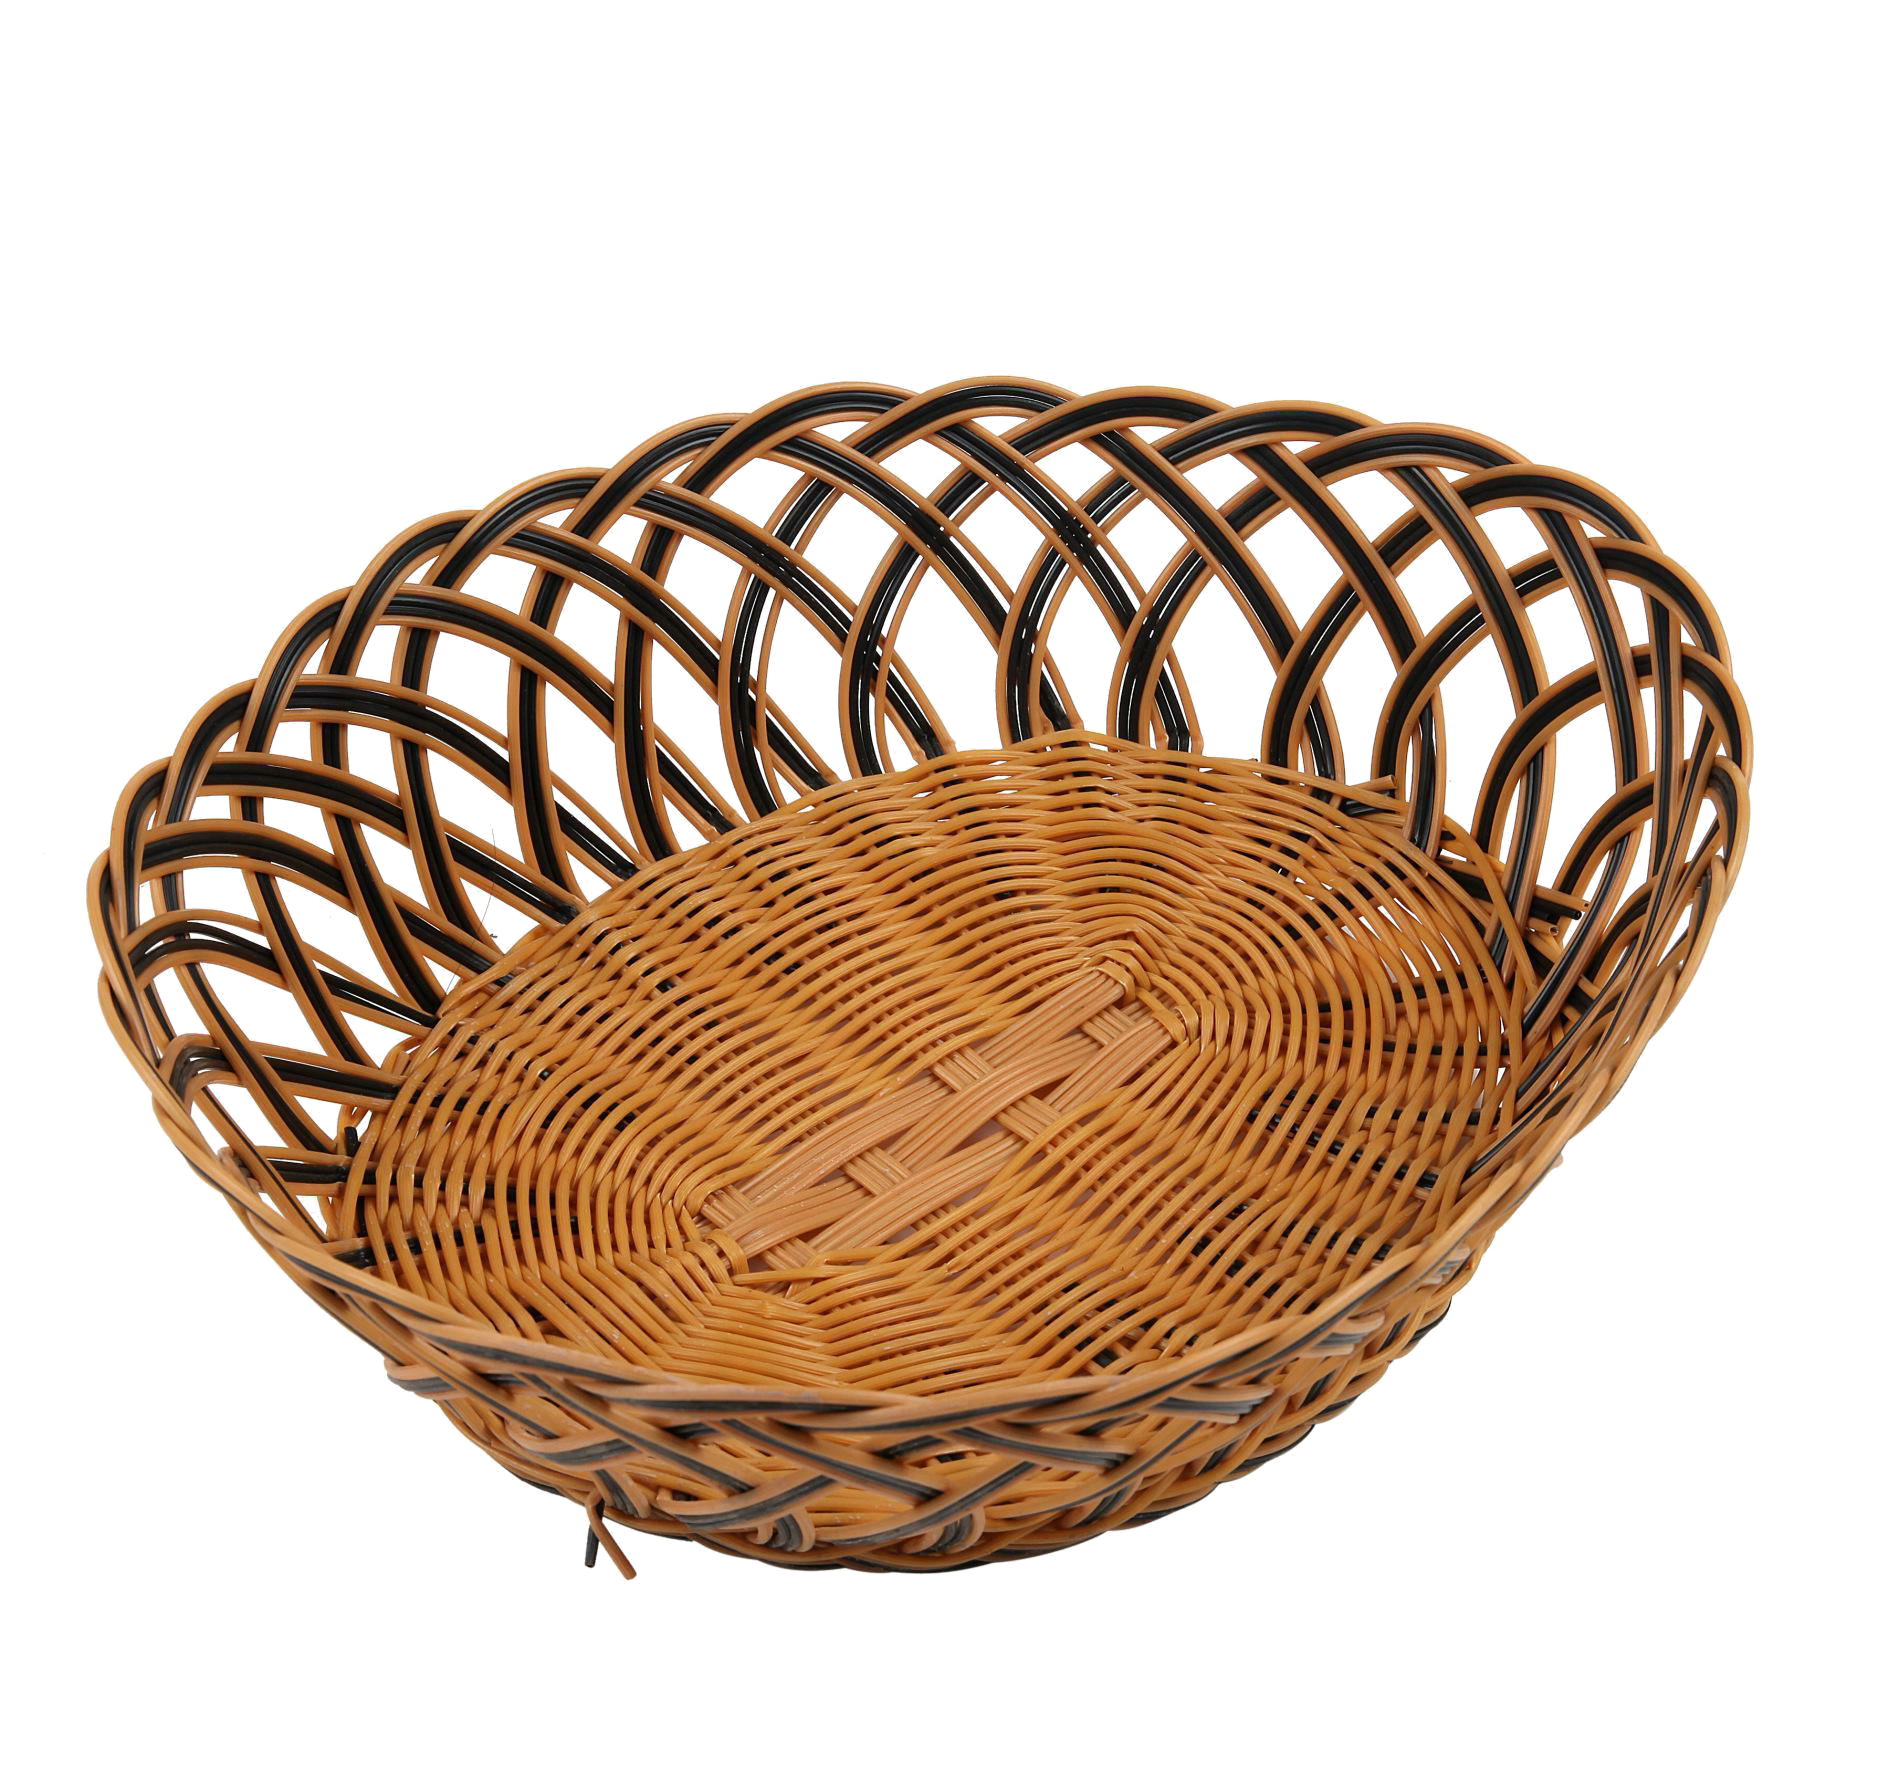 Pear clipart basket. Slinky stock photography toy